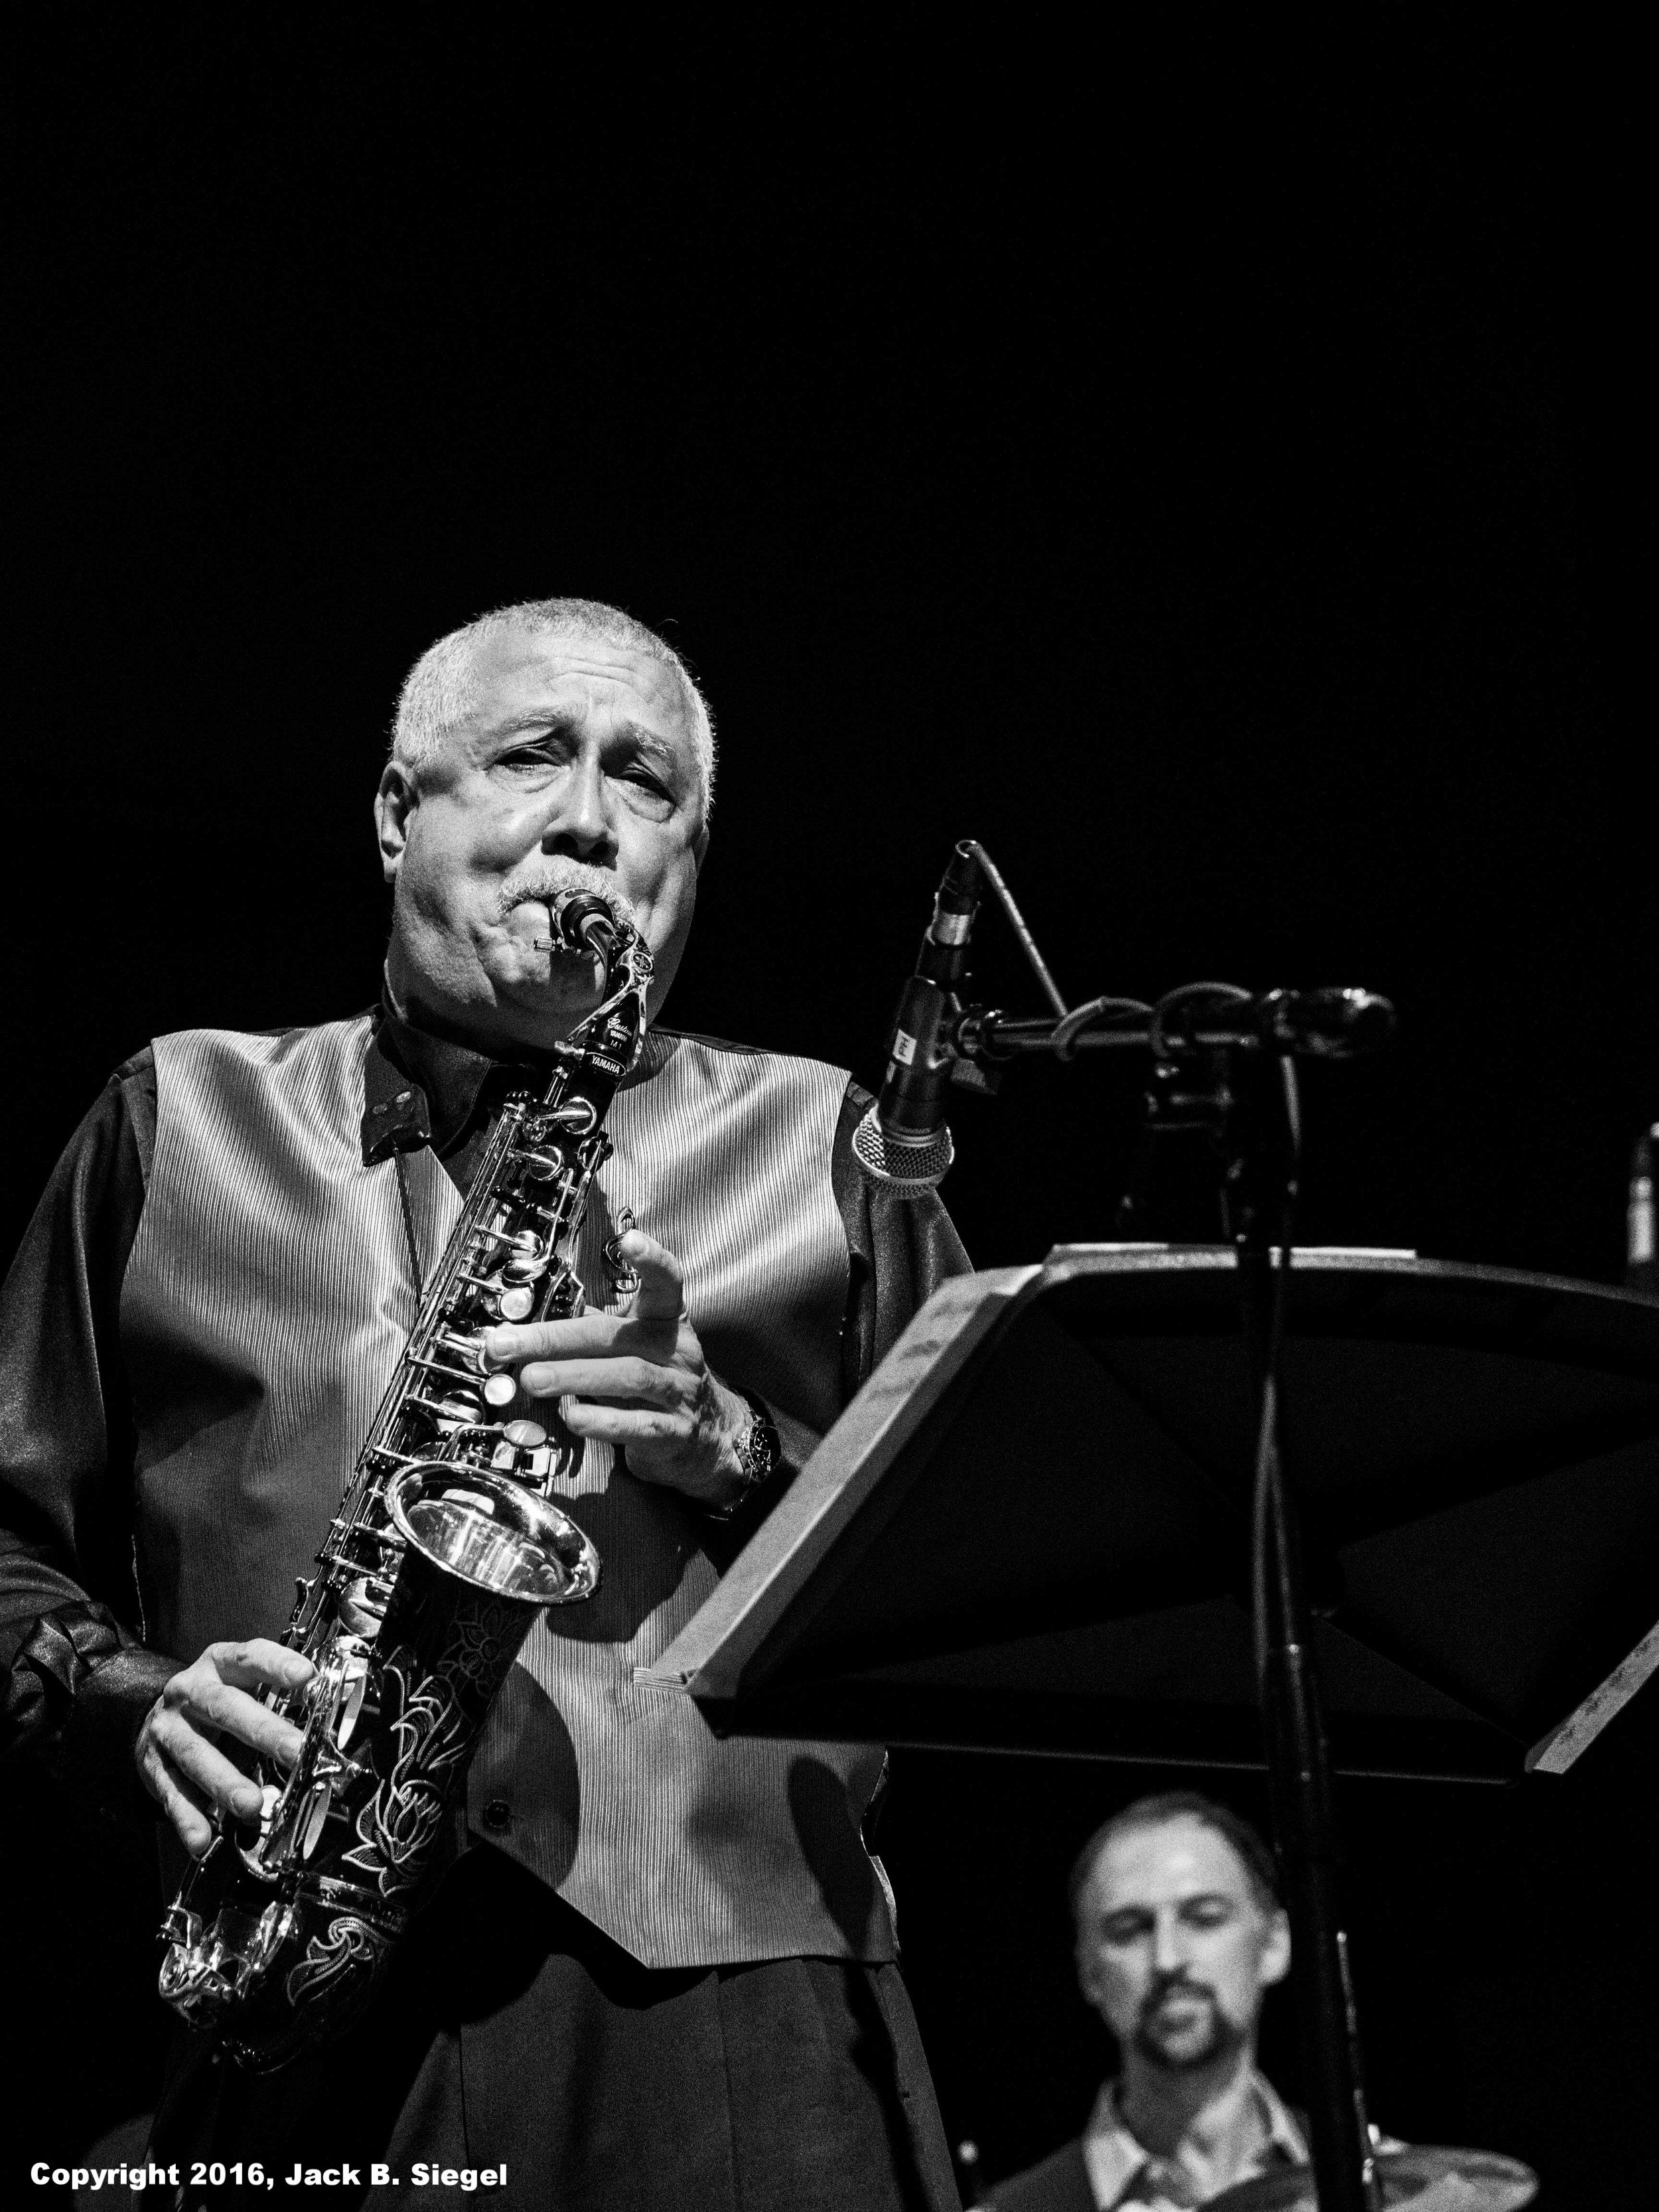 Paquito D'Rivera on Saxophone